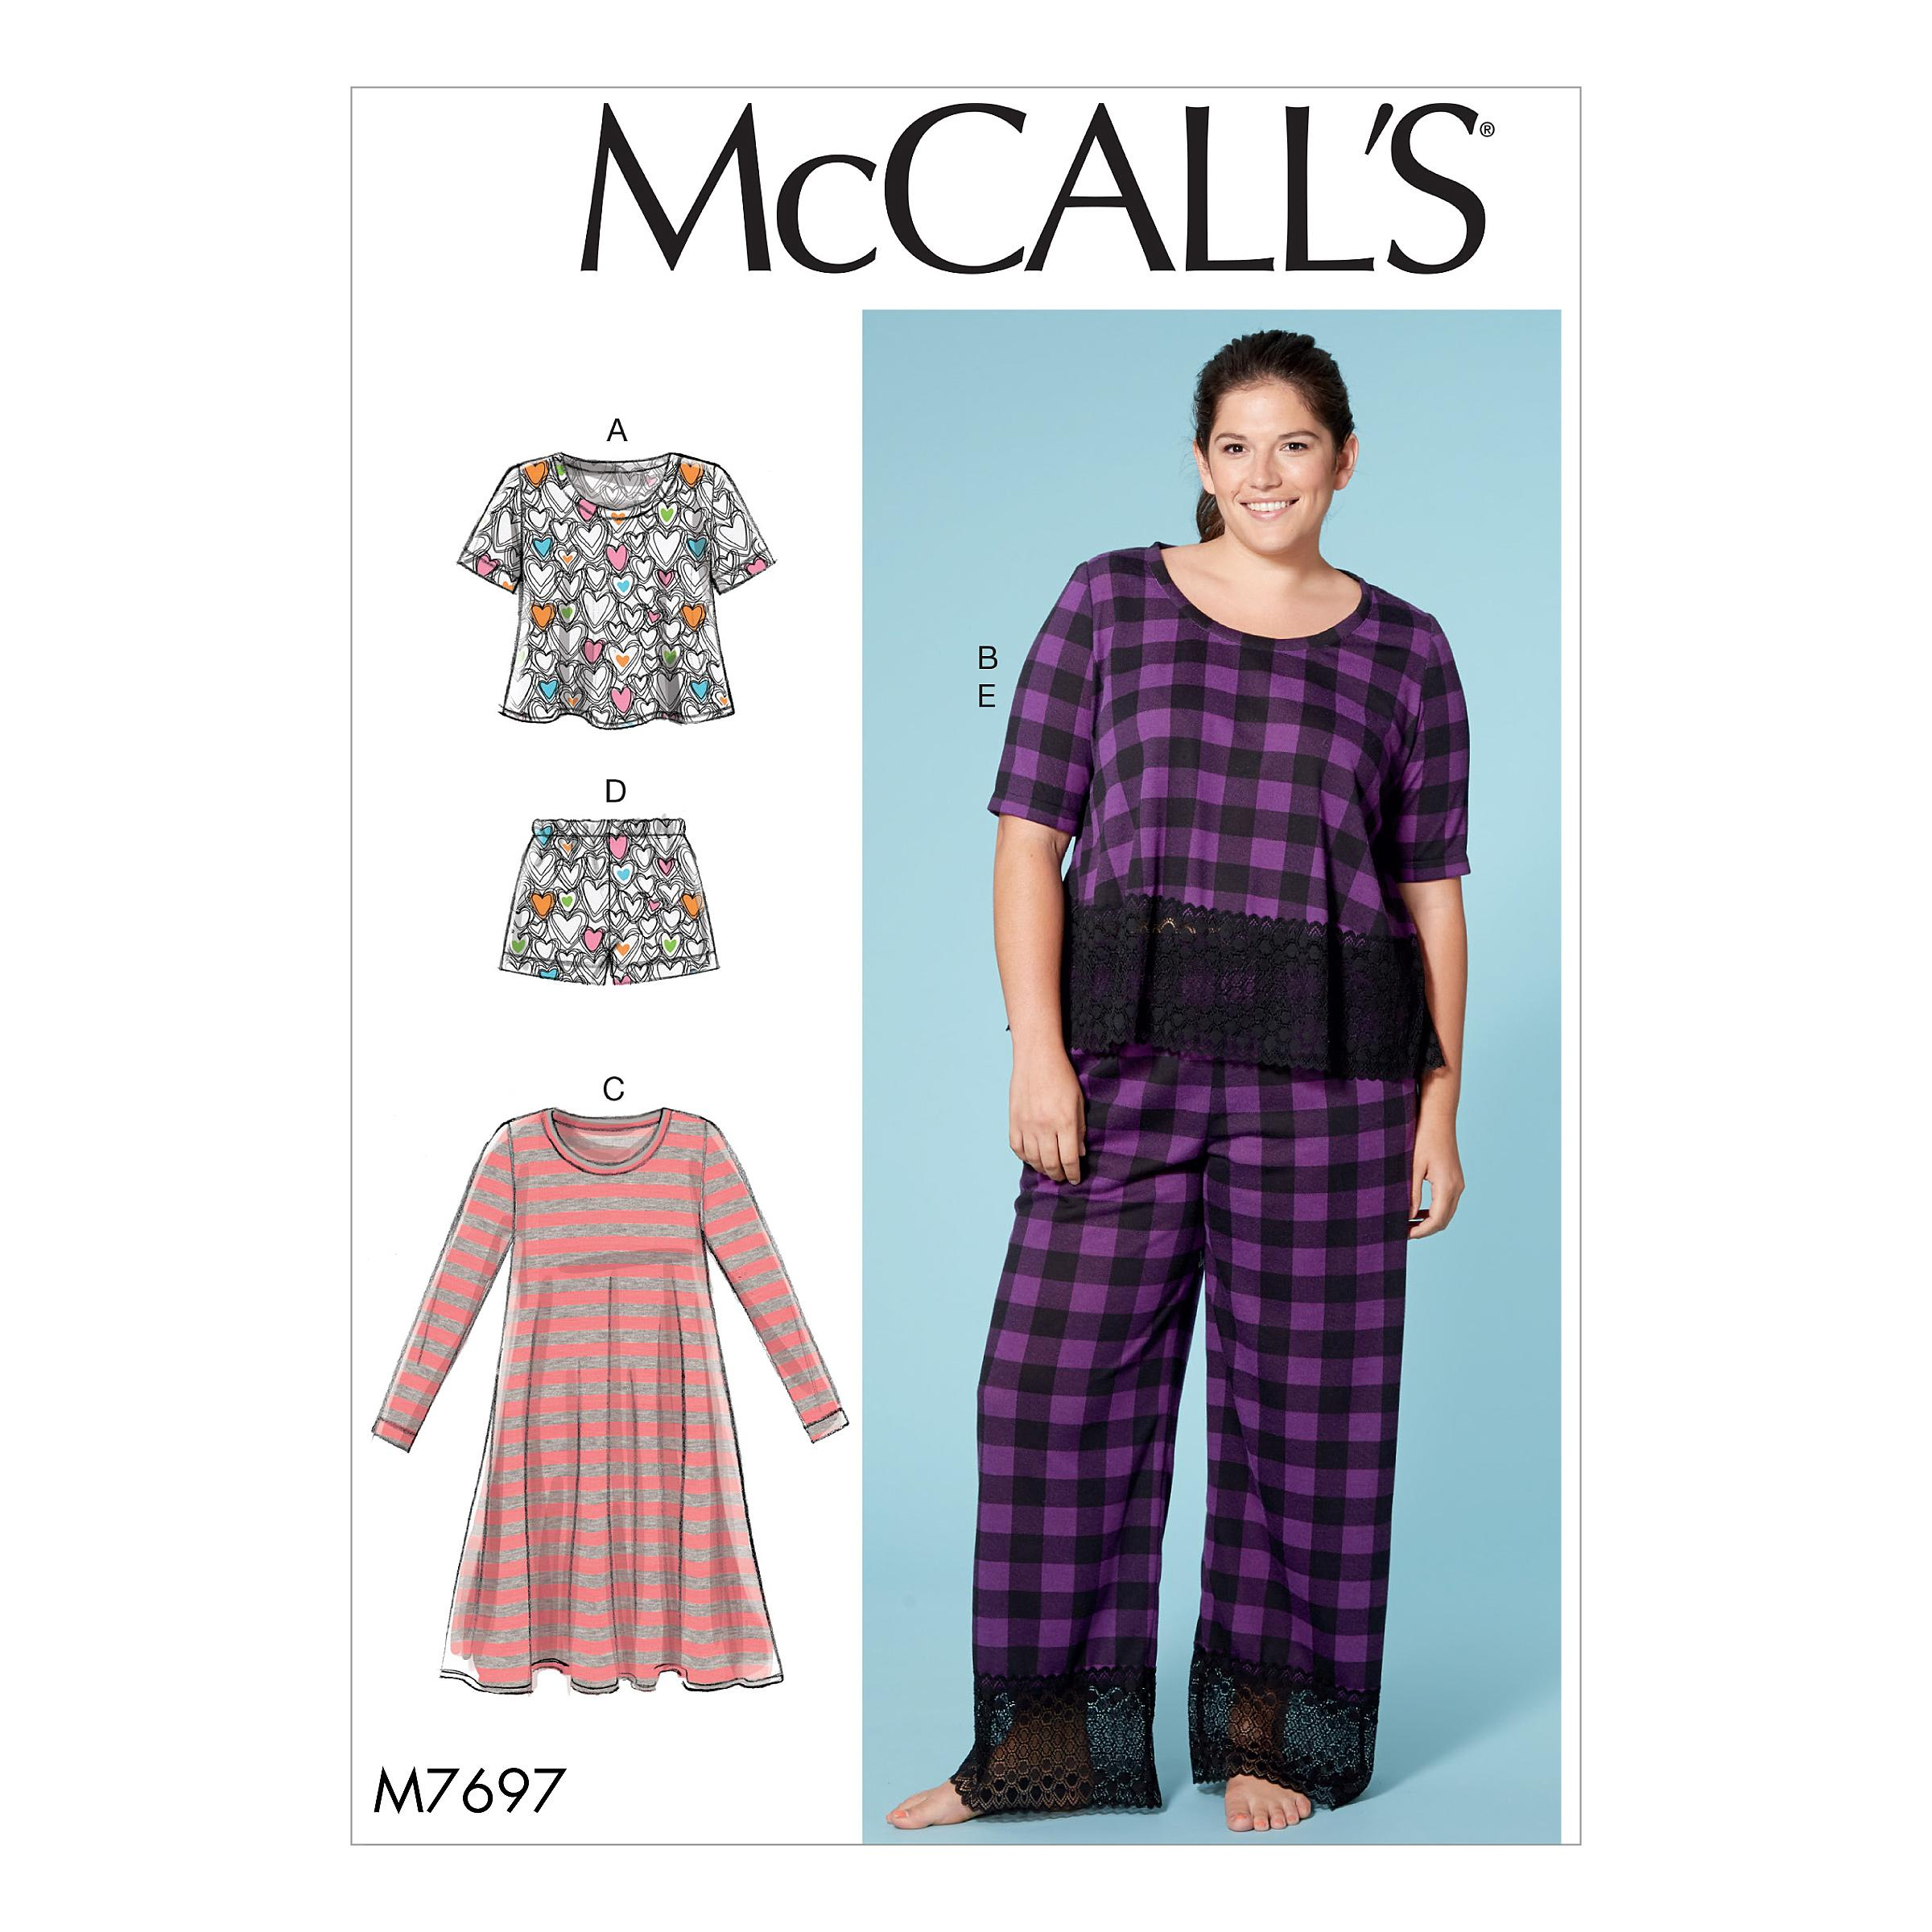 McCalls M7697 Misses Pants, Jumpsuits & Shorts, Misses Tops, Misses Coordinates, Plus Sizes, Family Sleepwear